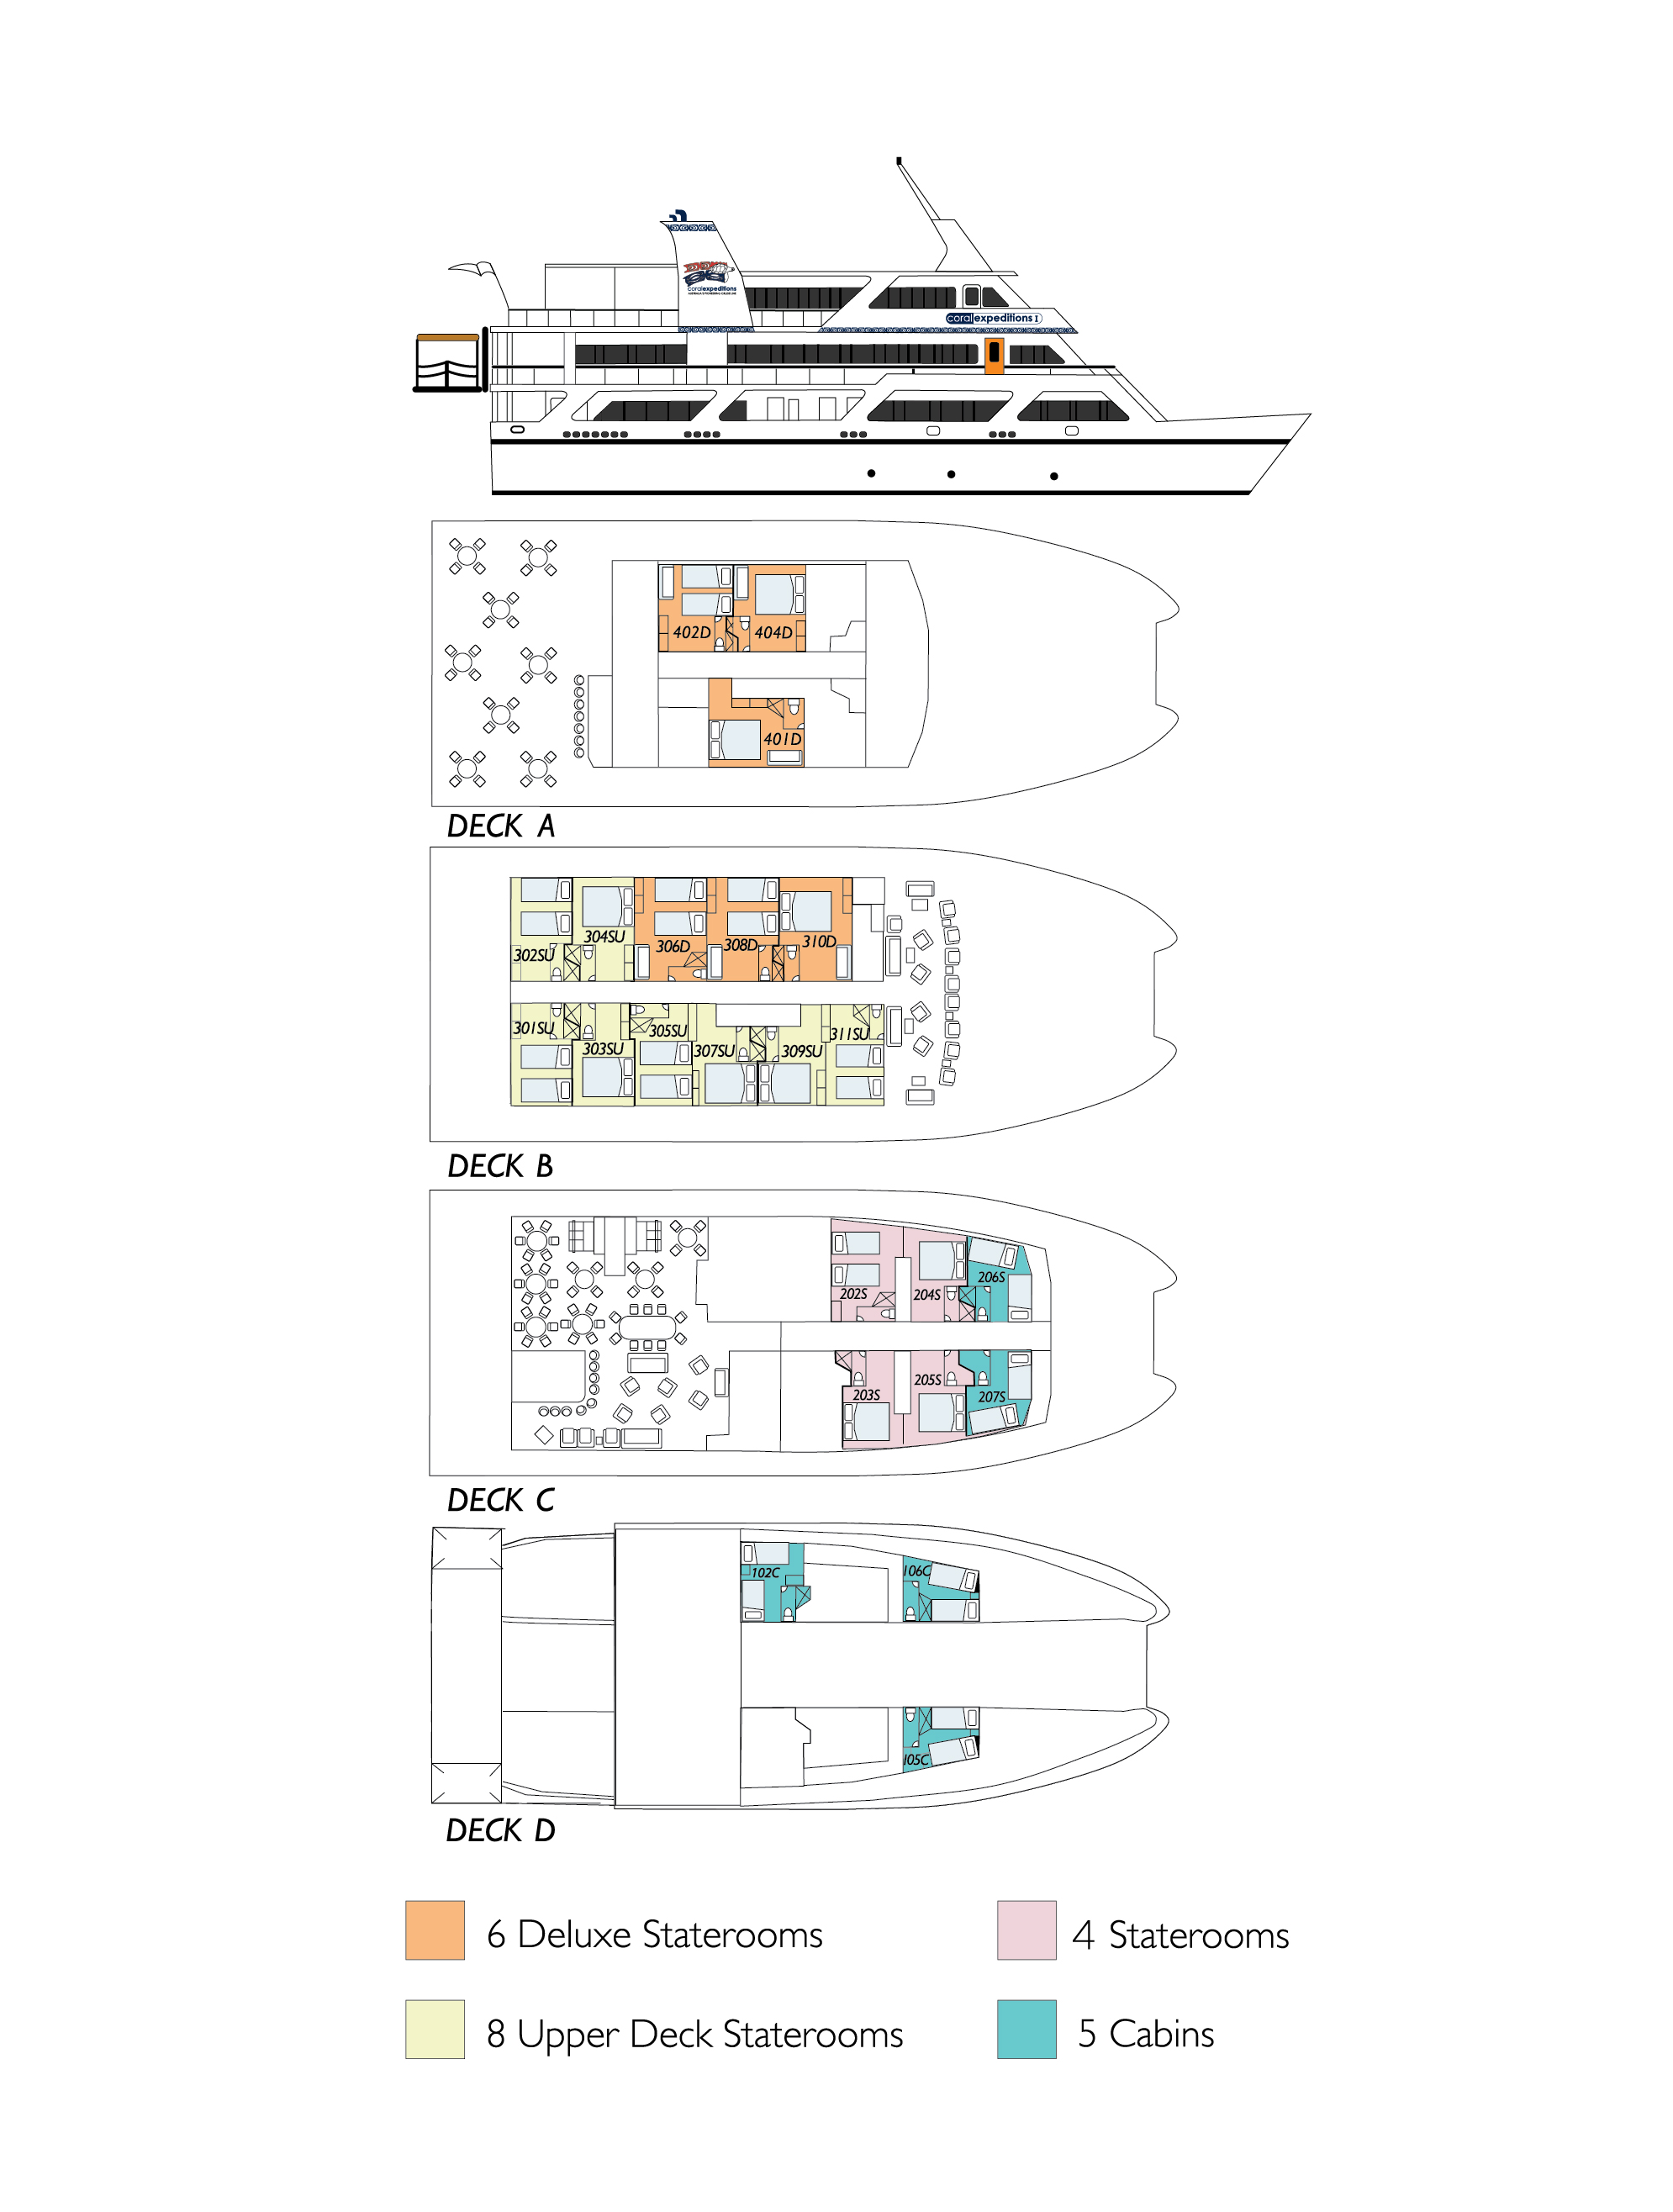 Cabin layout for Coral Expeditions I